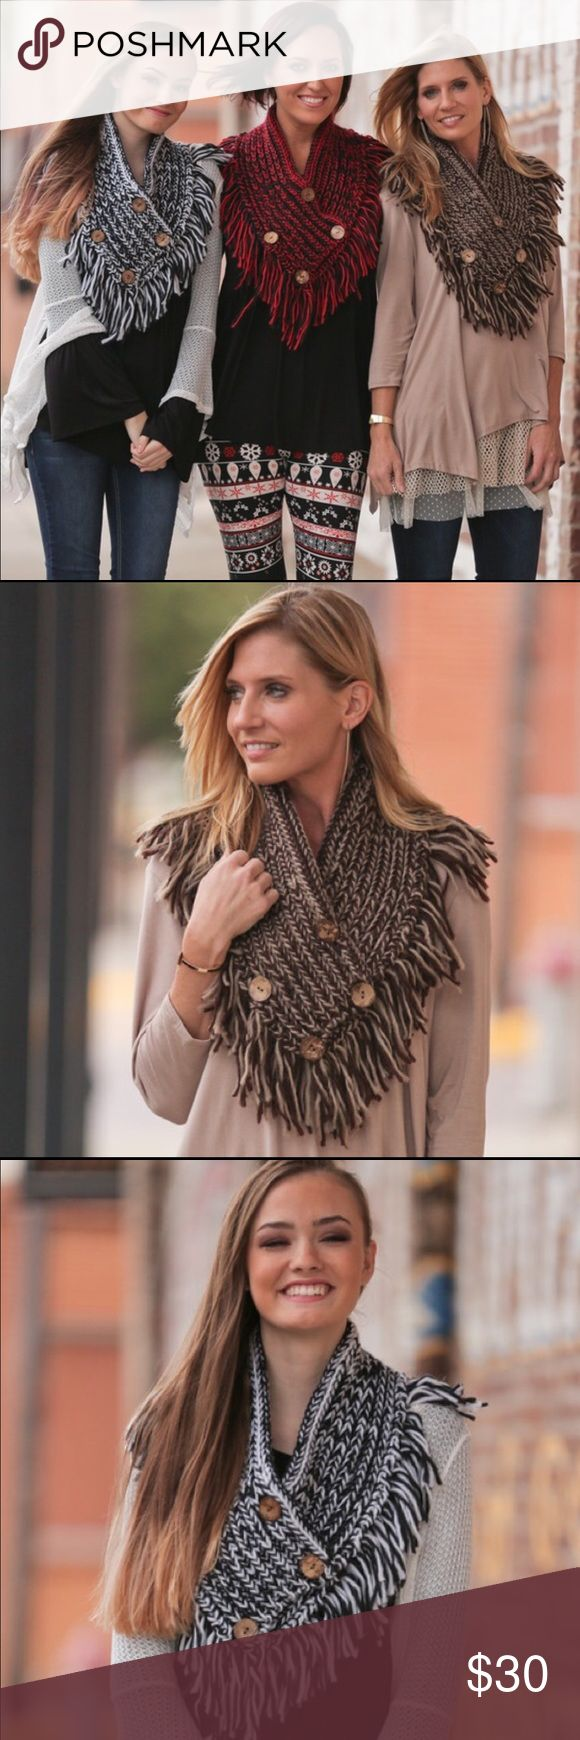 Coming Soon Cotton Button Shawl Cotton button shawn a must have accessory for fall and winter. Get yours before they sell out. Colors available are black and white, red and black, and mocha and tan. Select your color in the size selection when you purchase. If you are interested click like and I will tag you when they come in. Infinity Raine Accessories Scarves & Wraps